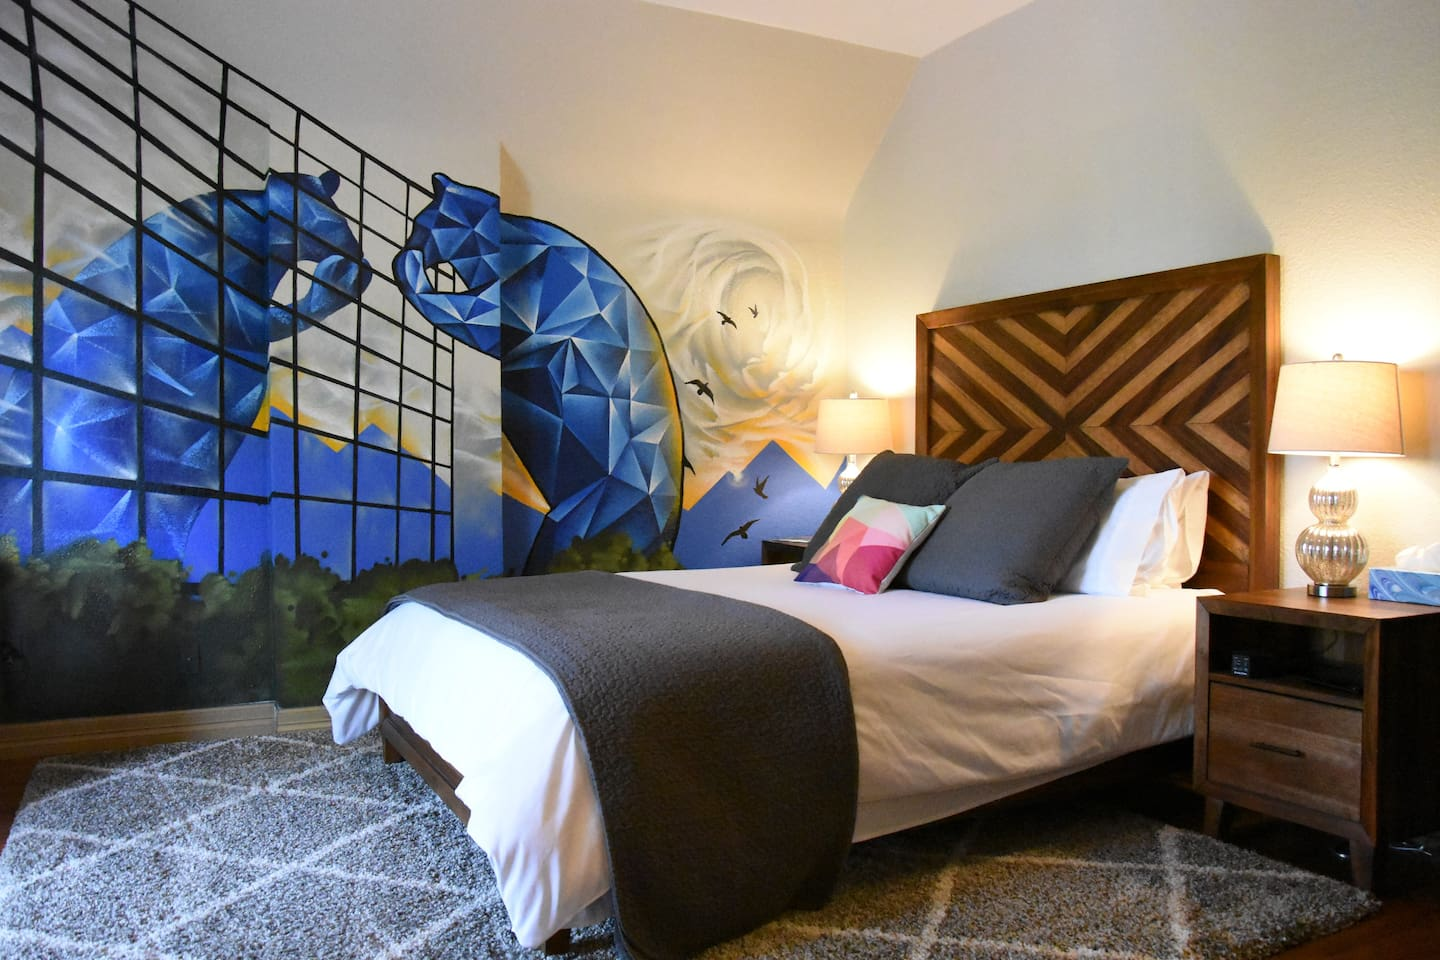 A VERY comfortable bed with the Big Blue Bear seeing his reflection at the Convention Center. Mural by renowned Denver artist Chad Bolsinger. RiNo art walk is just blocks away!